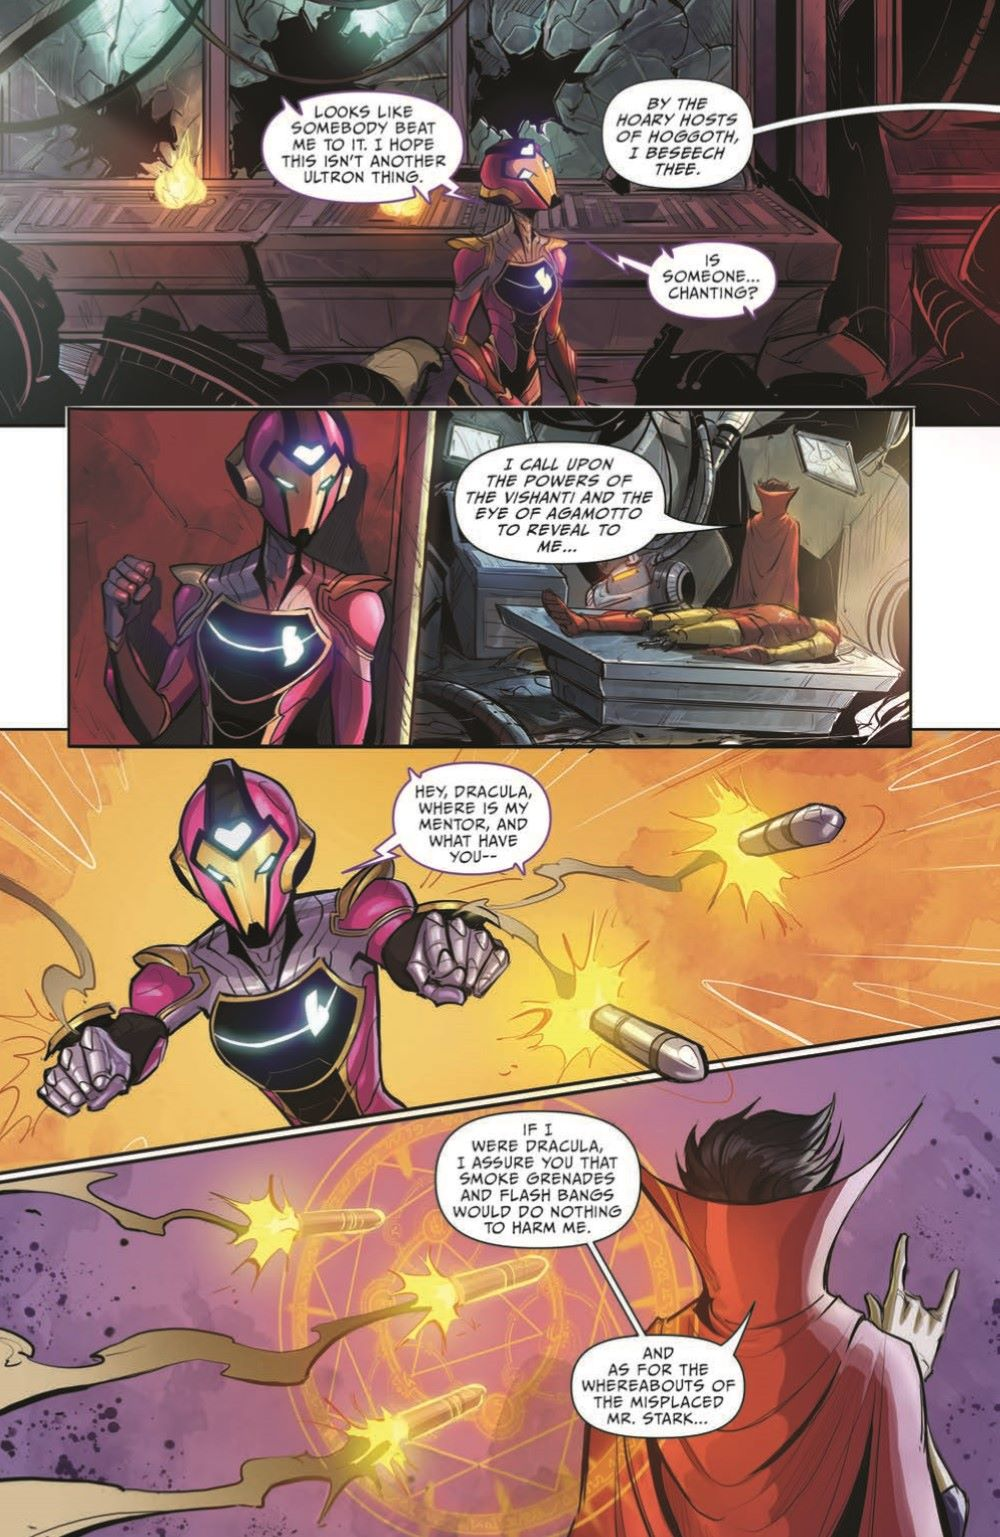 Marvel_Chillers_01_pr-4 ComicList Previews: MARVEL ACTION CHILLERS #1